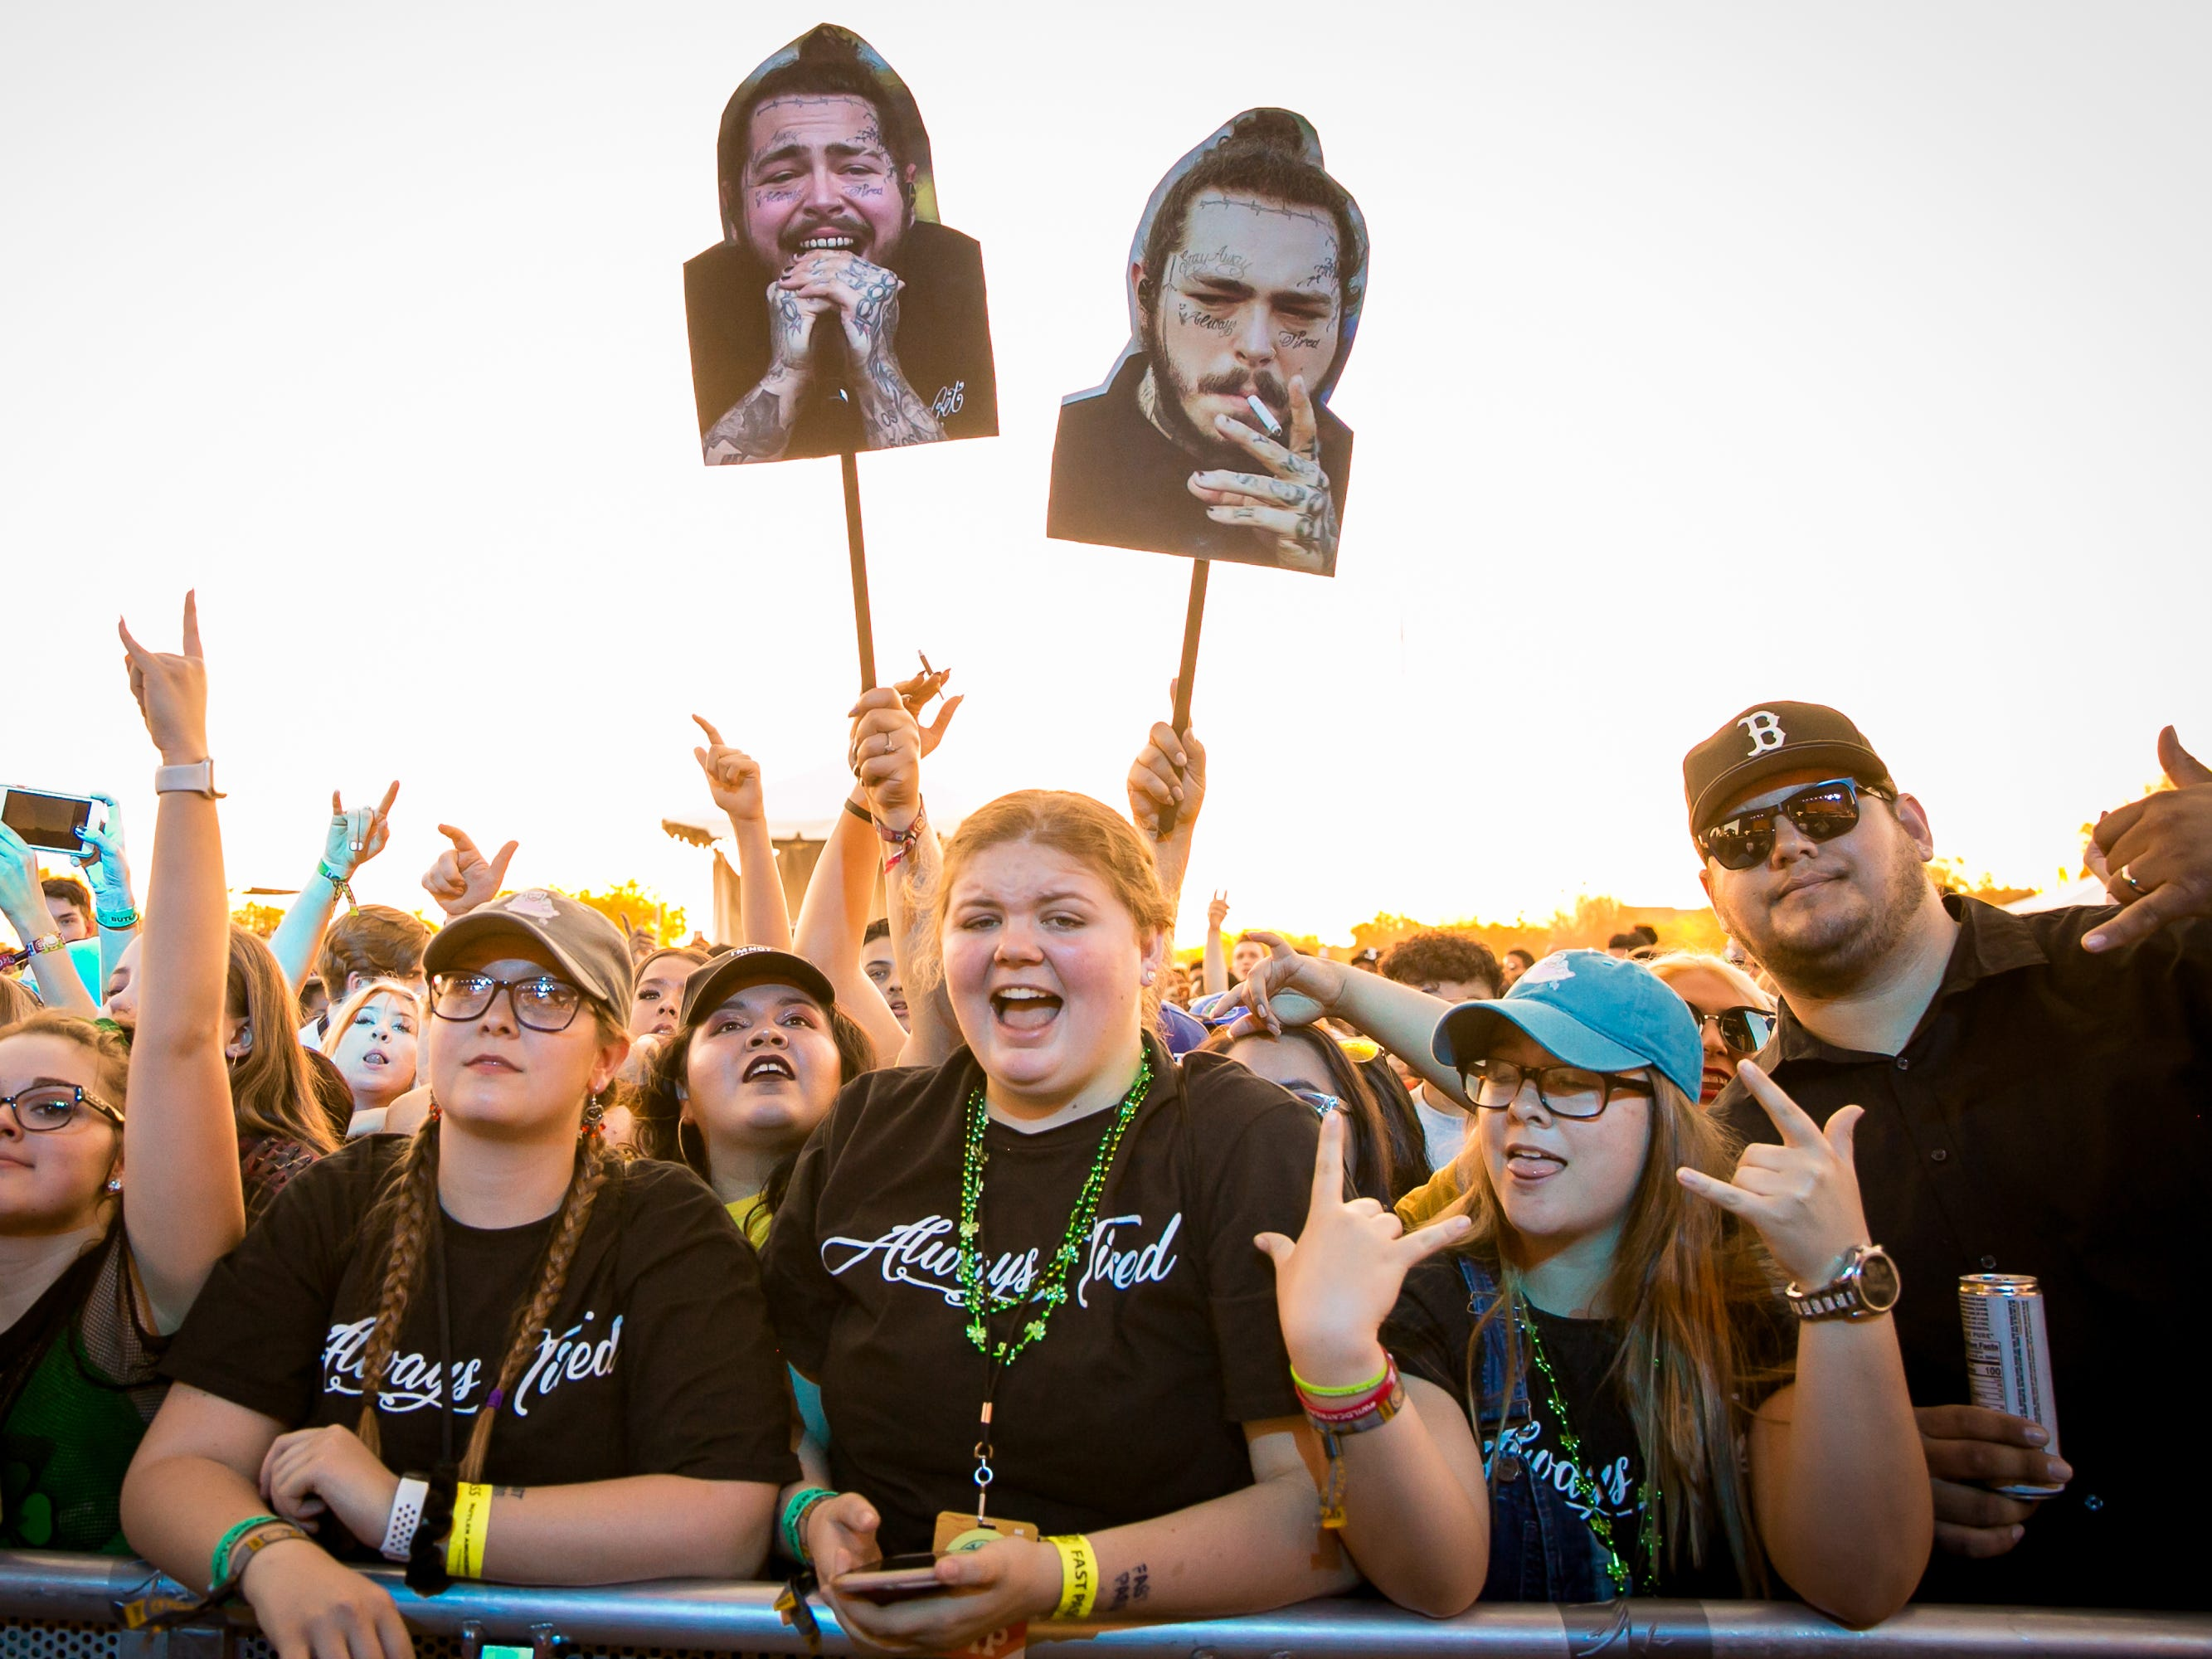 These fans were stoked to see Post Malone at Pot of Gold Music Festival on Sunday, March 17, 2019.